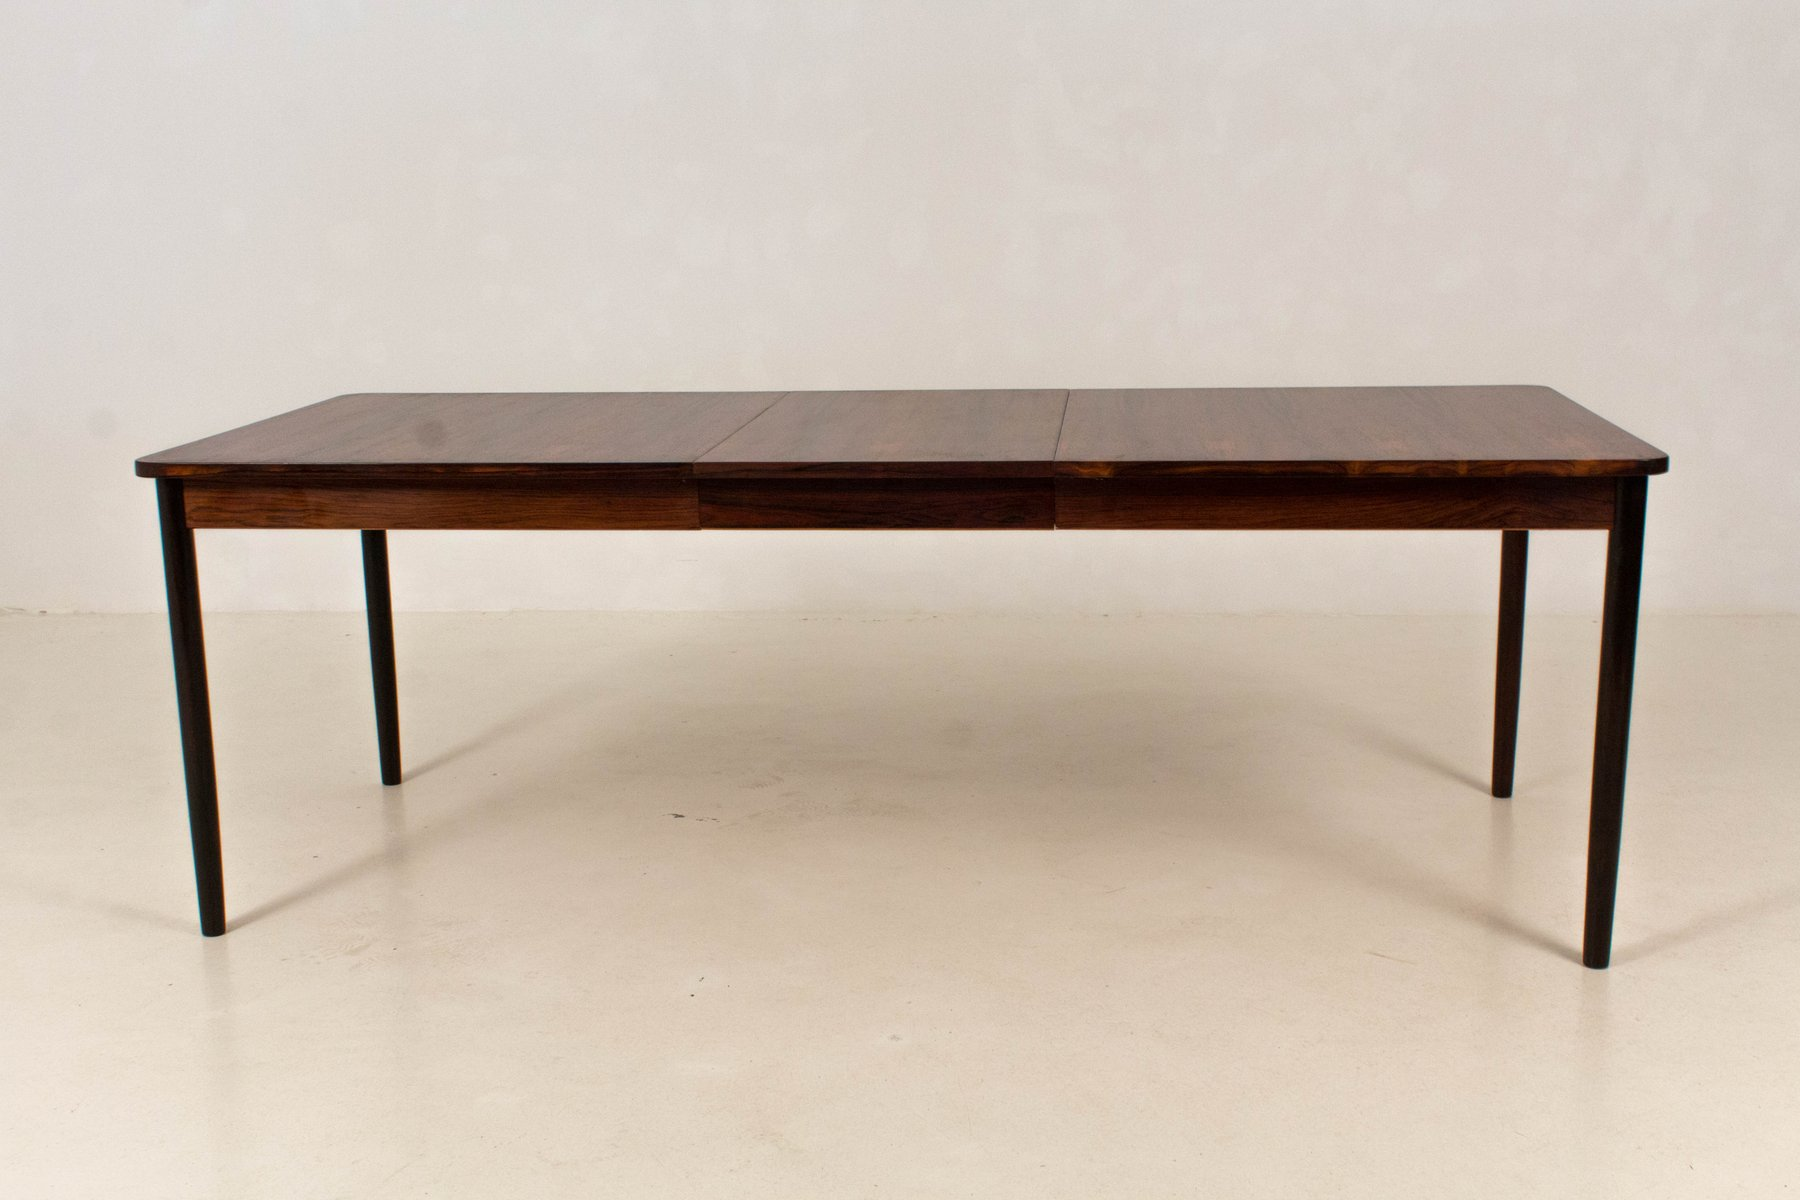 Mid century modern large extendable dining table from fristho 1960s